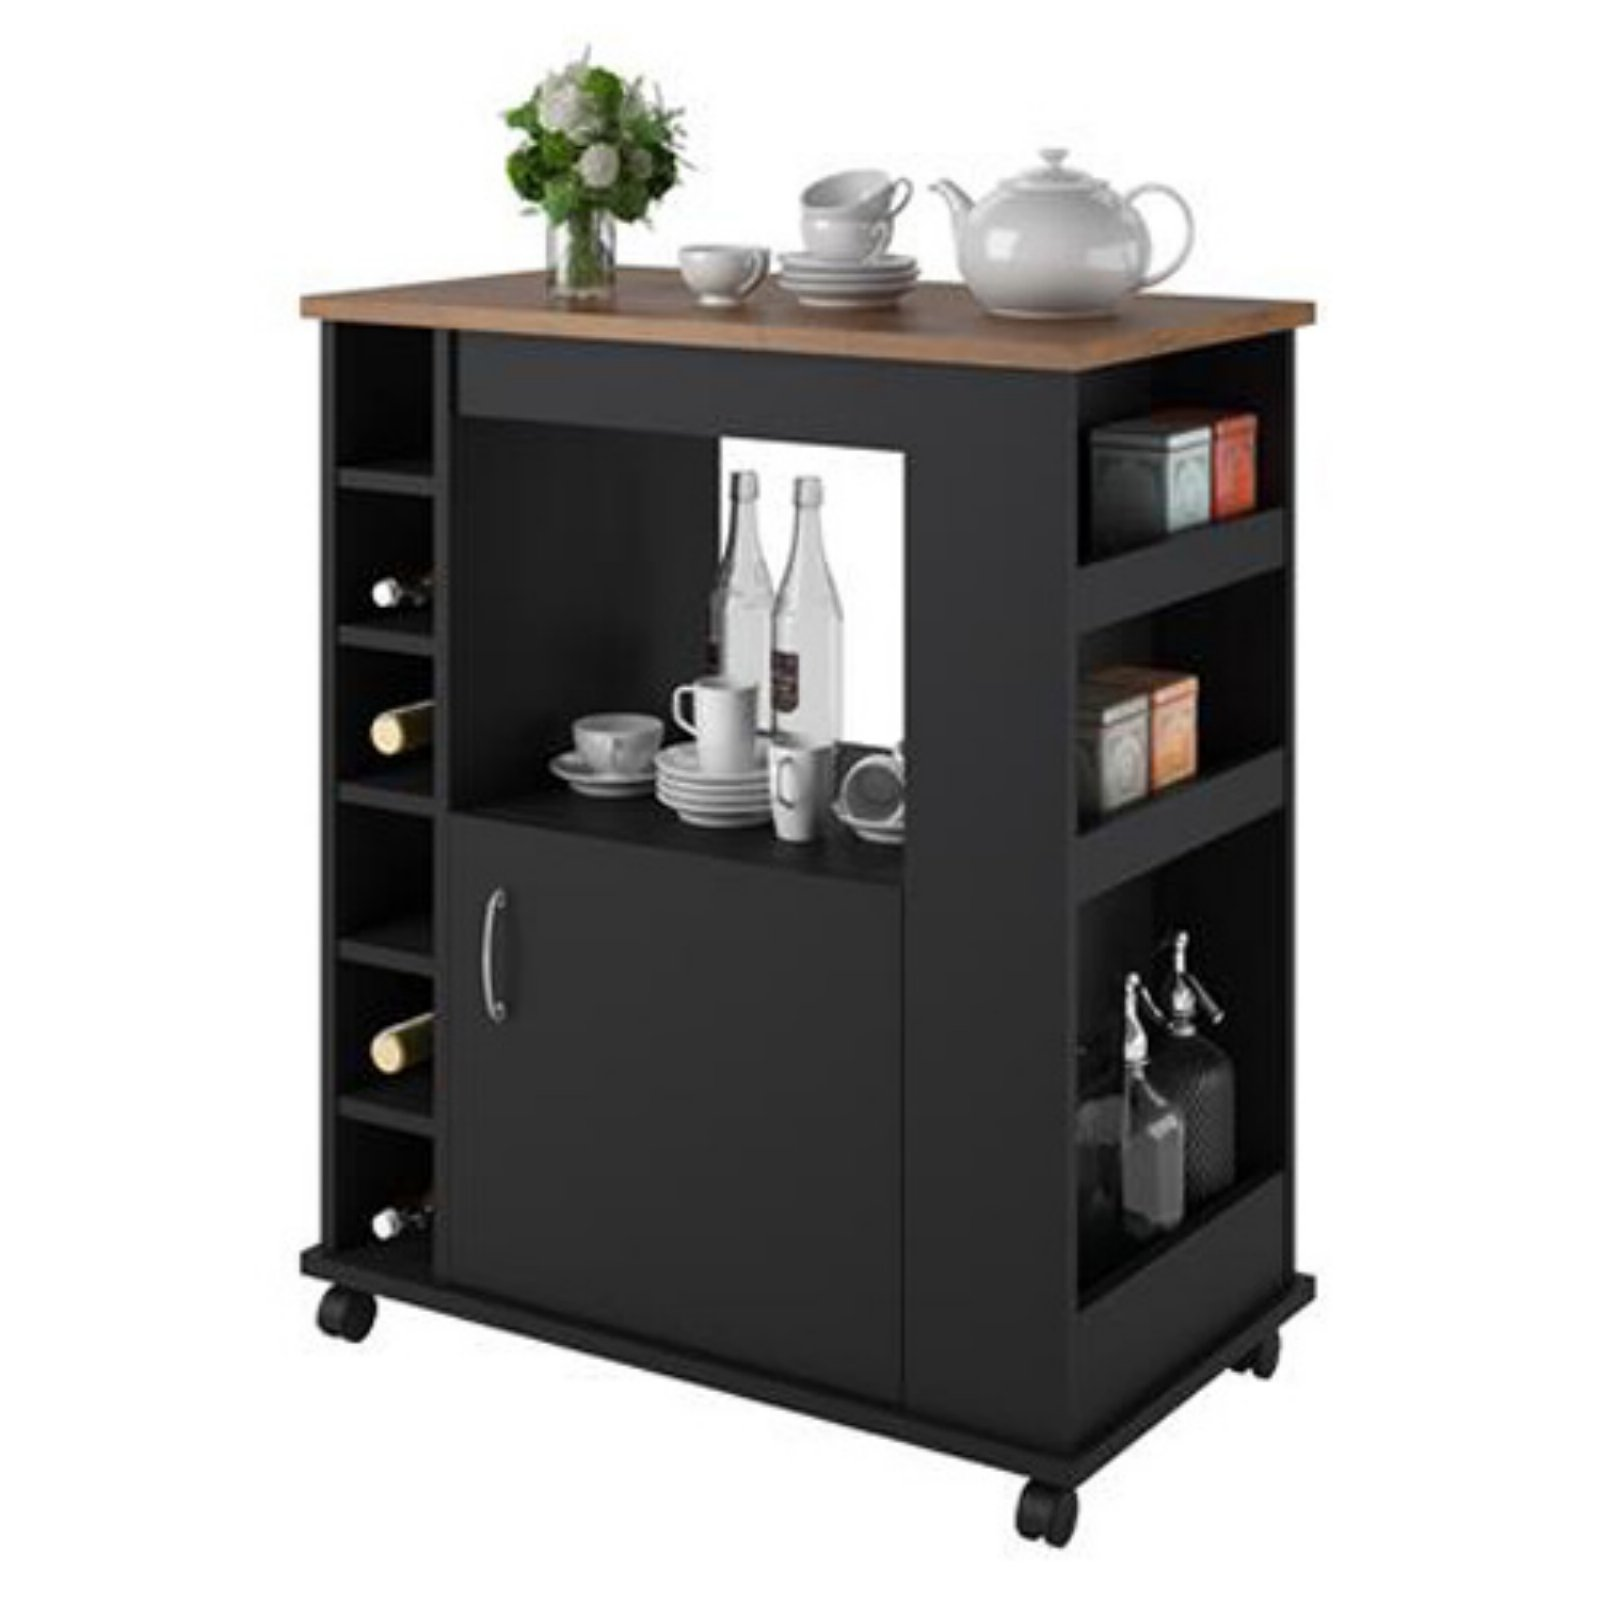 225 & Ameriwood Home Williams Kitchen Cart Black/Old Fashioned Pine